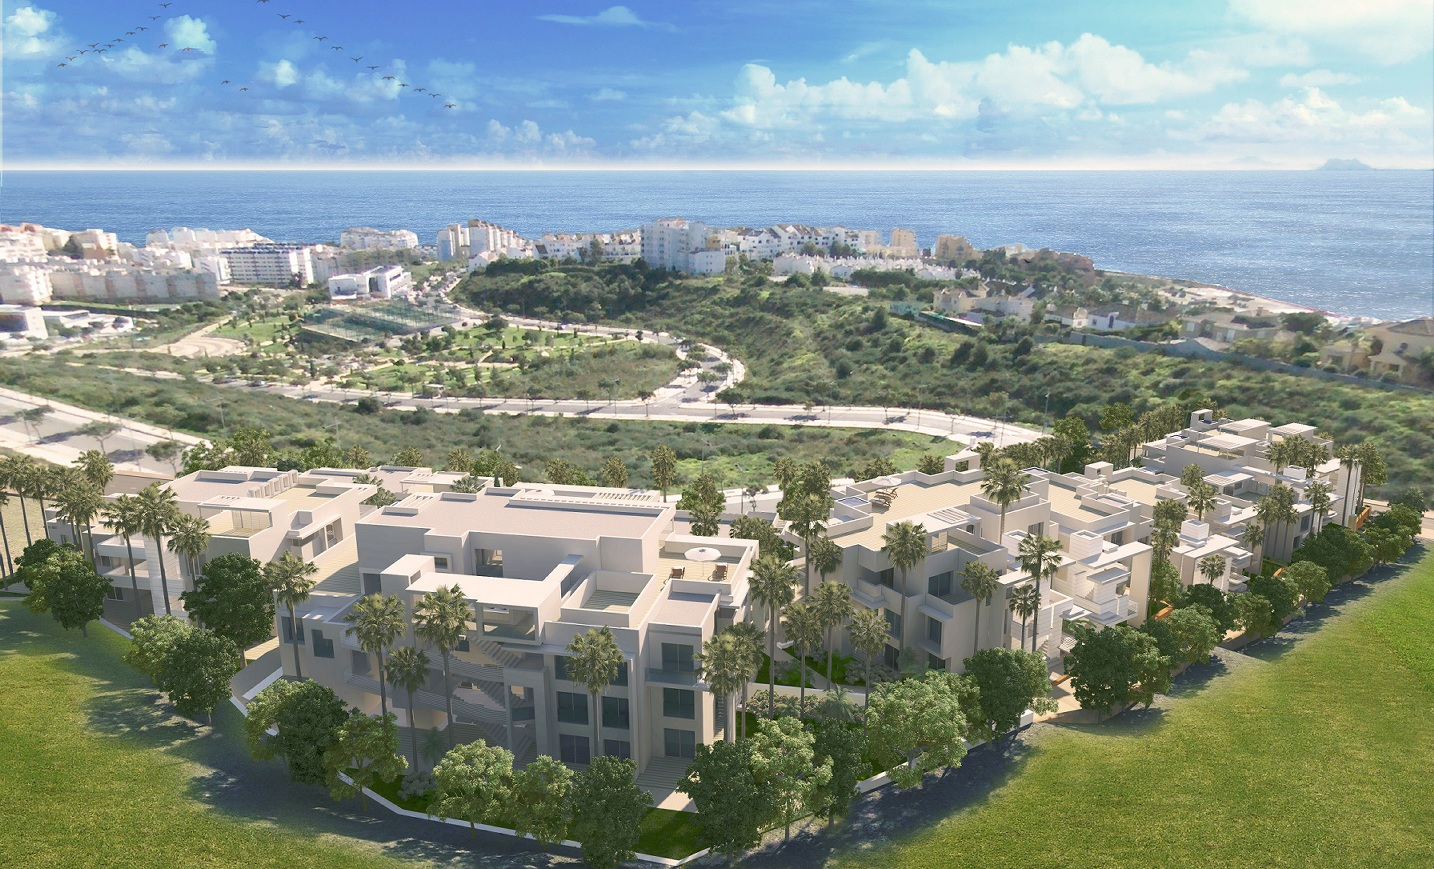 Apartments with sea view in Estepona